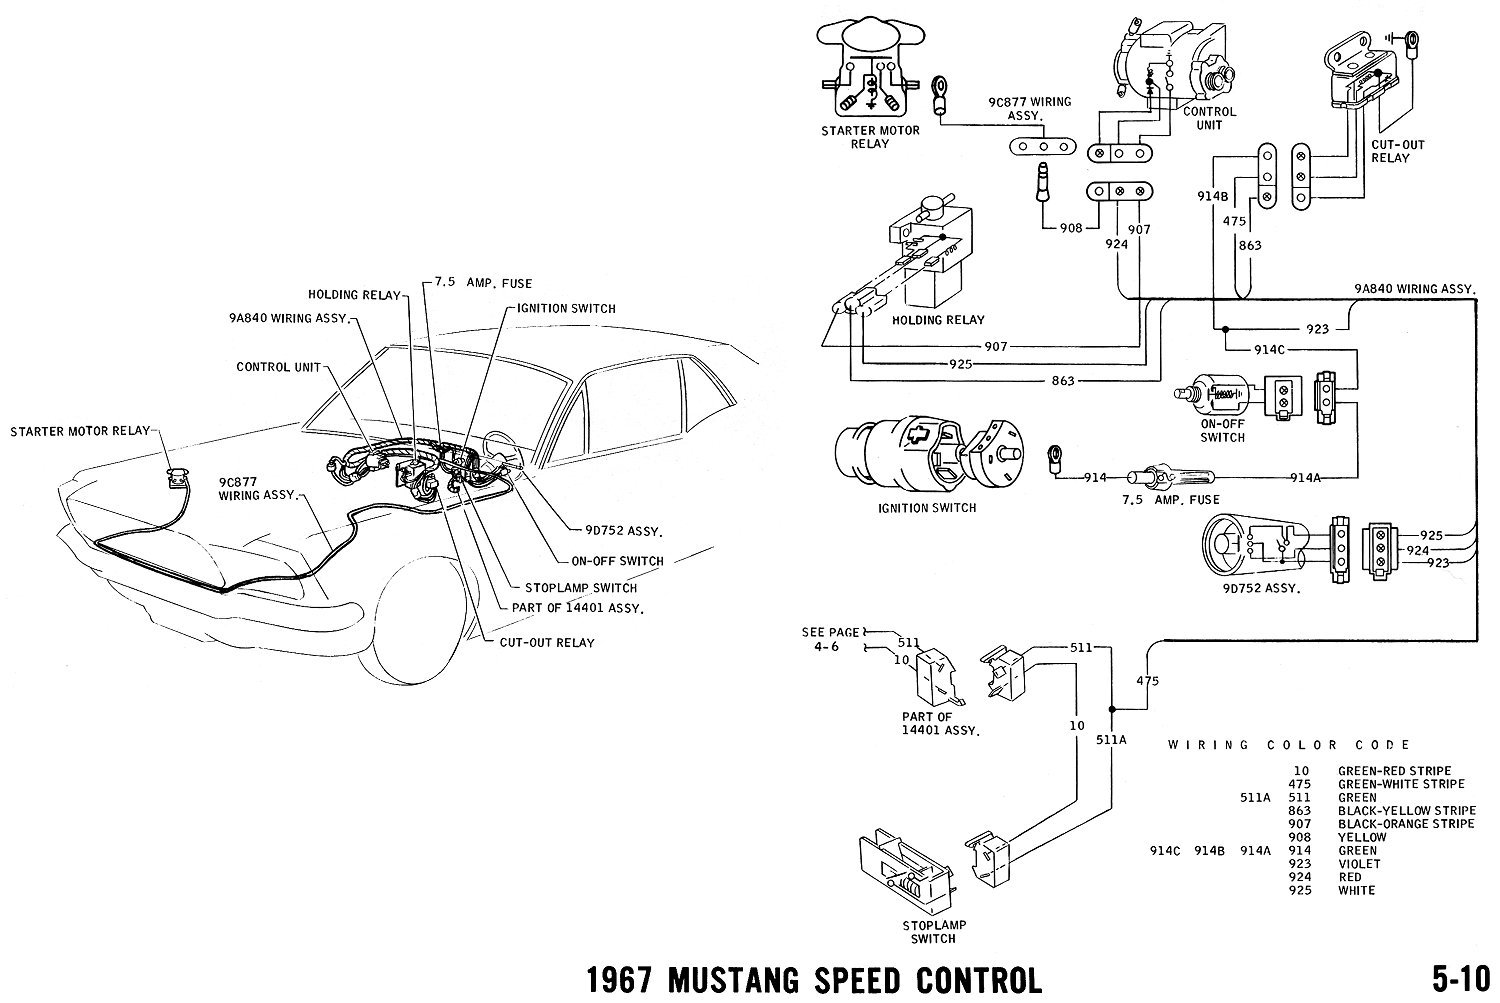 67 mustang wiring diagram free vehicle wiring diagrams u2022 rh addone tw 1968 Mustang Wiring Harness Diagram 1989 Mustang Wiring Harness Diagram